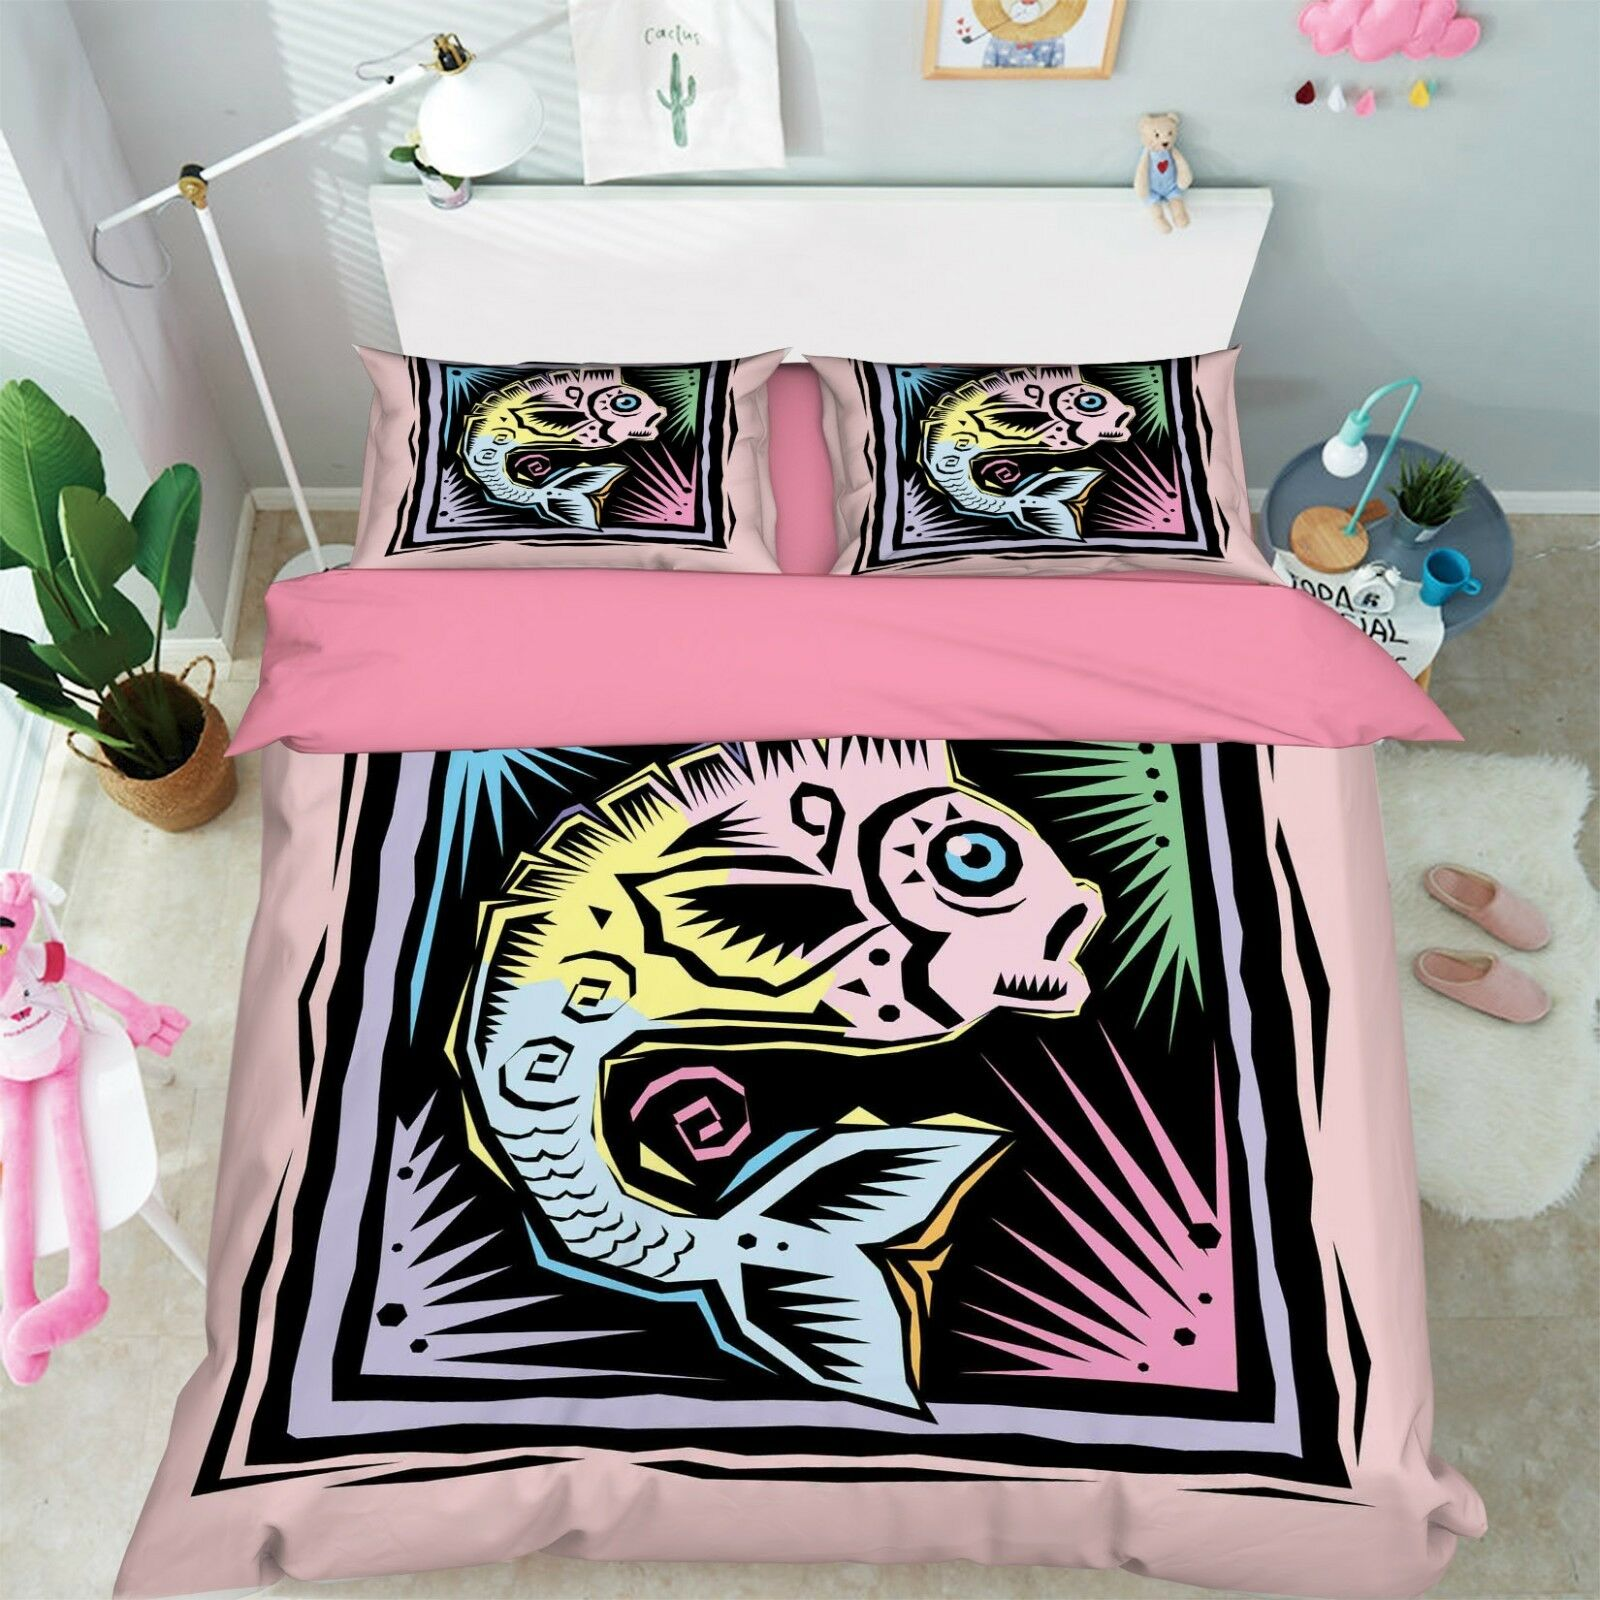 3D Fish Picture Bed Pillowcases Quilt Duvet Cover Set Single Queen King Größe AU